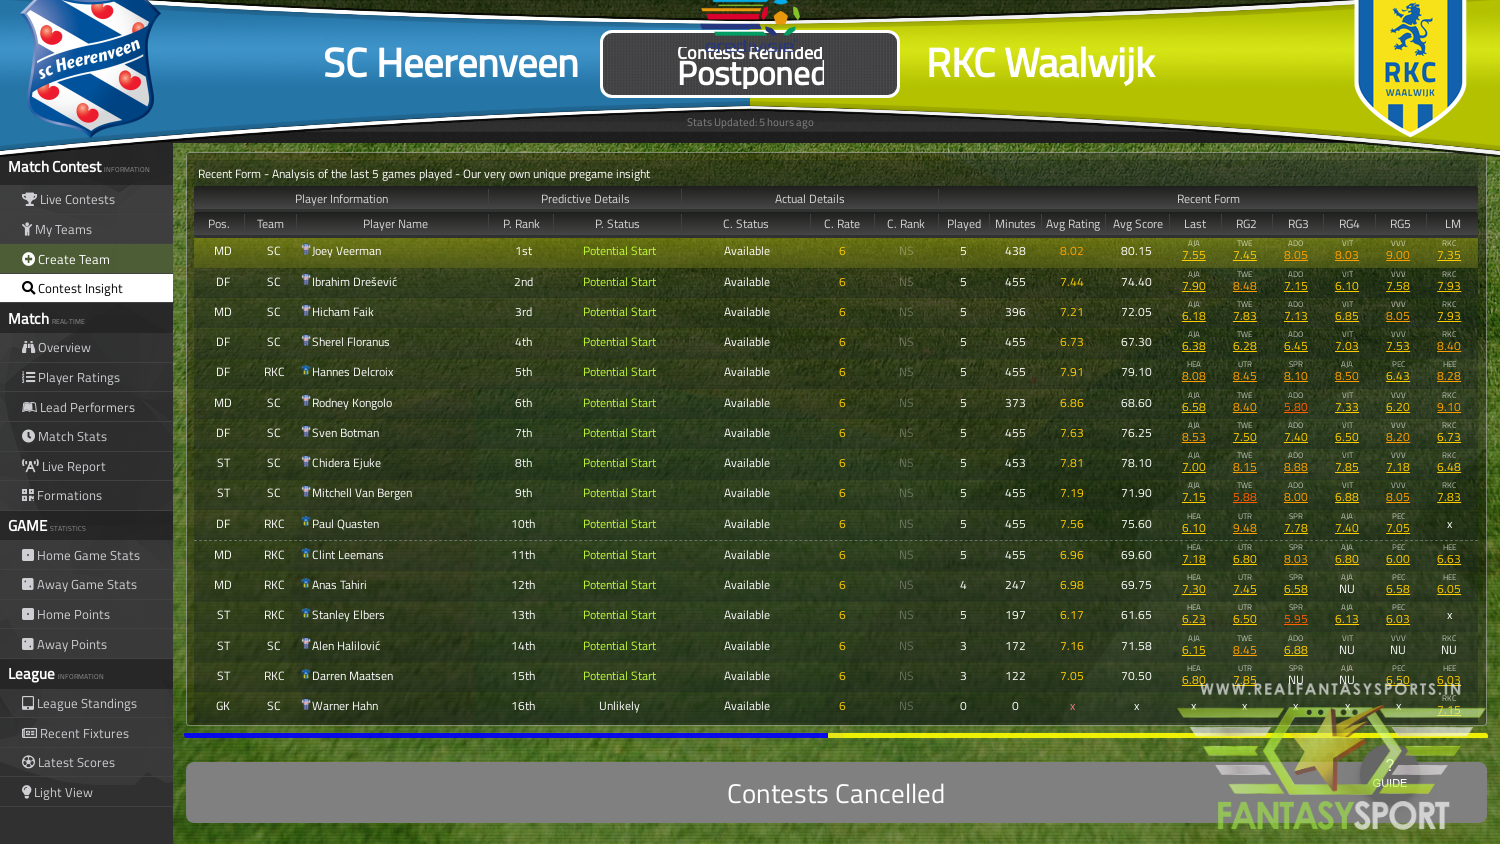 Dream Team Pick For Sc Heerenveen Vs Rkc Waalwijk